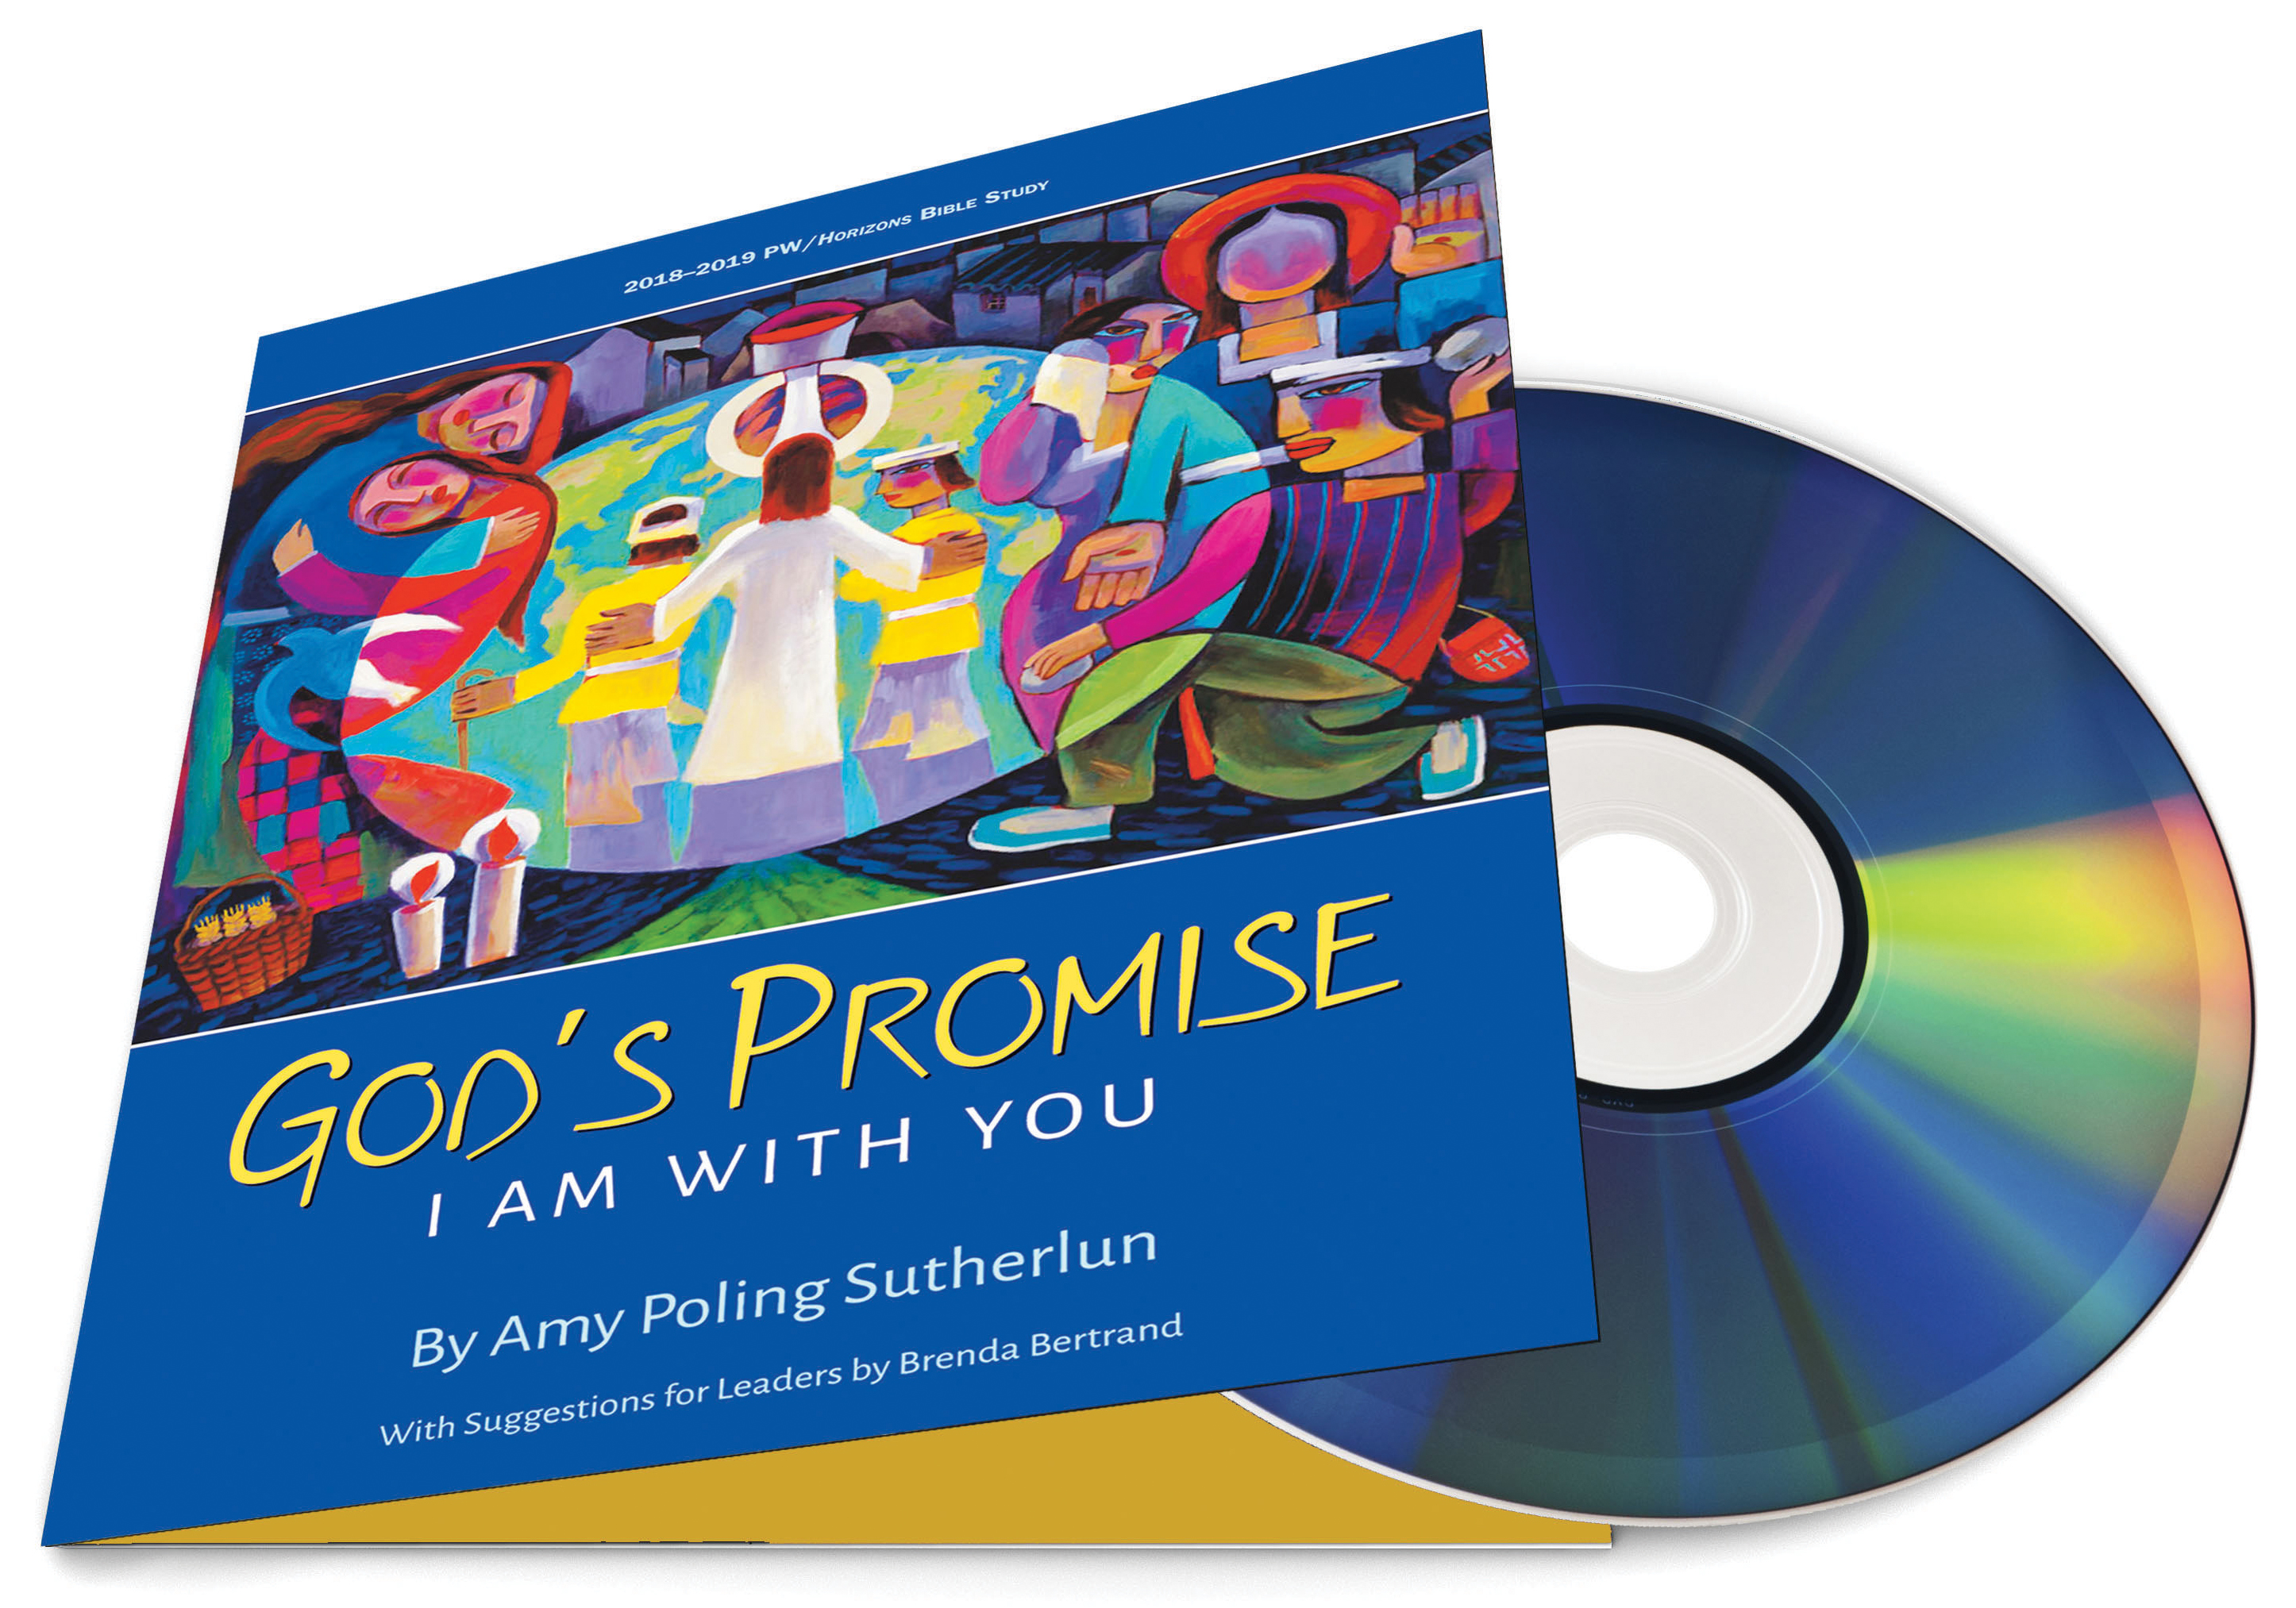 God's Promise Companion DVD